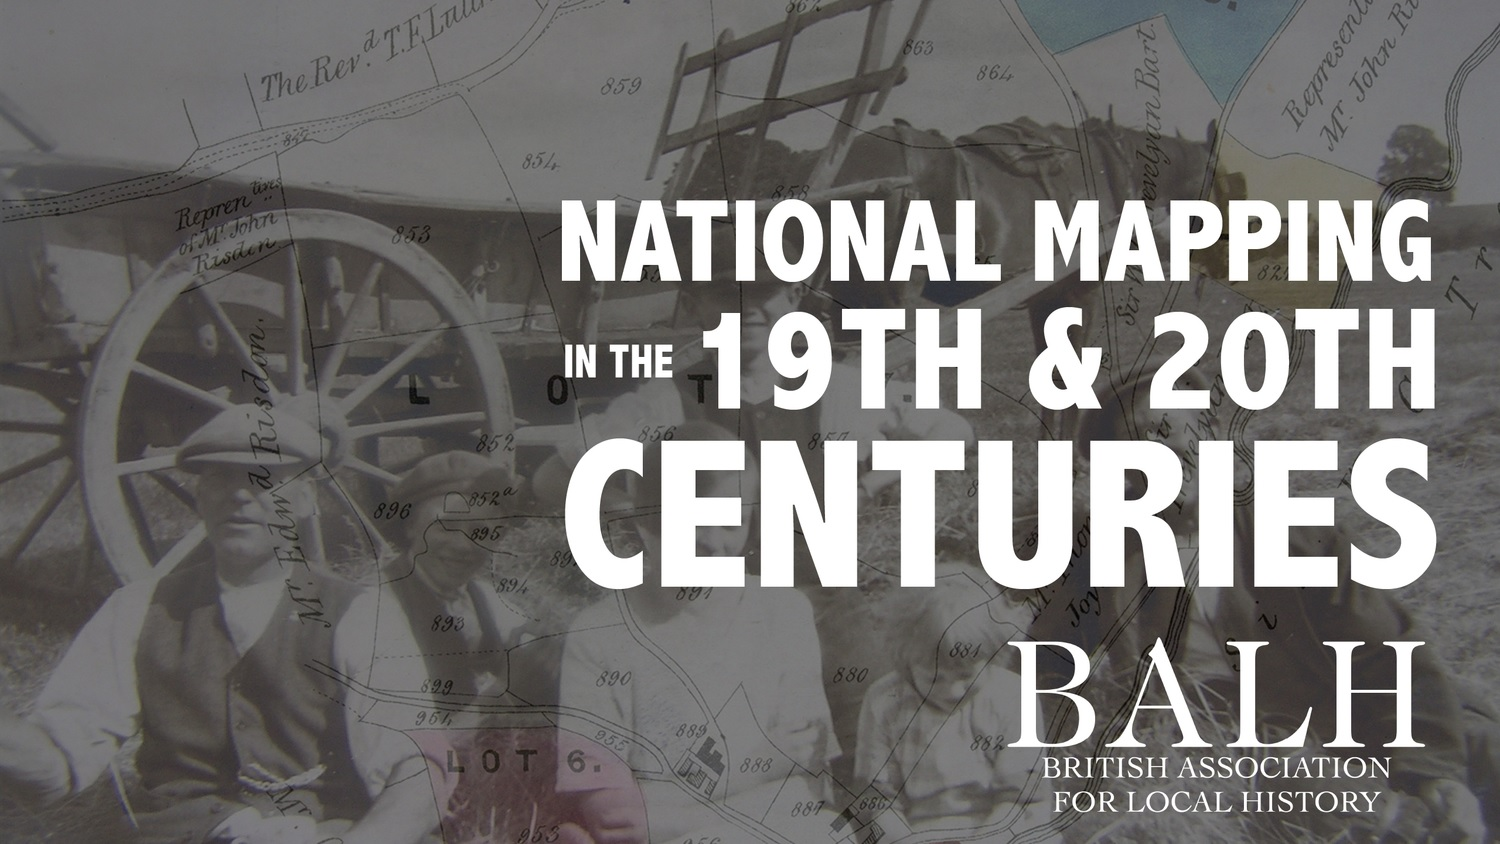 National Mapping in the 19th and 20th centuries